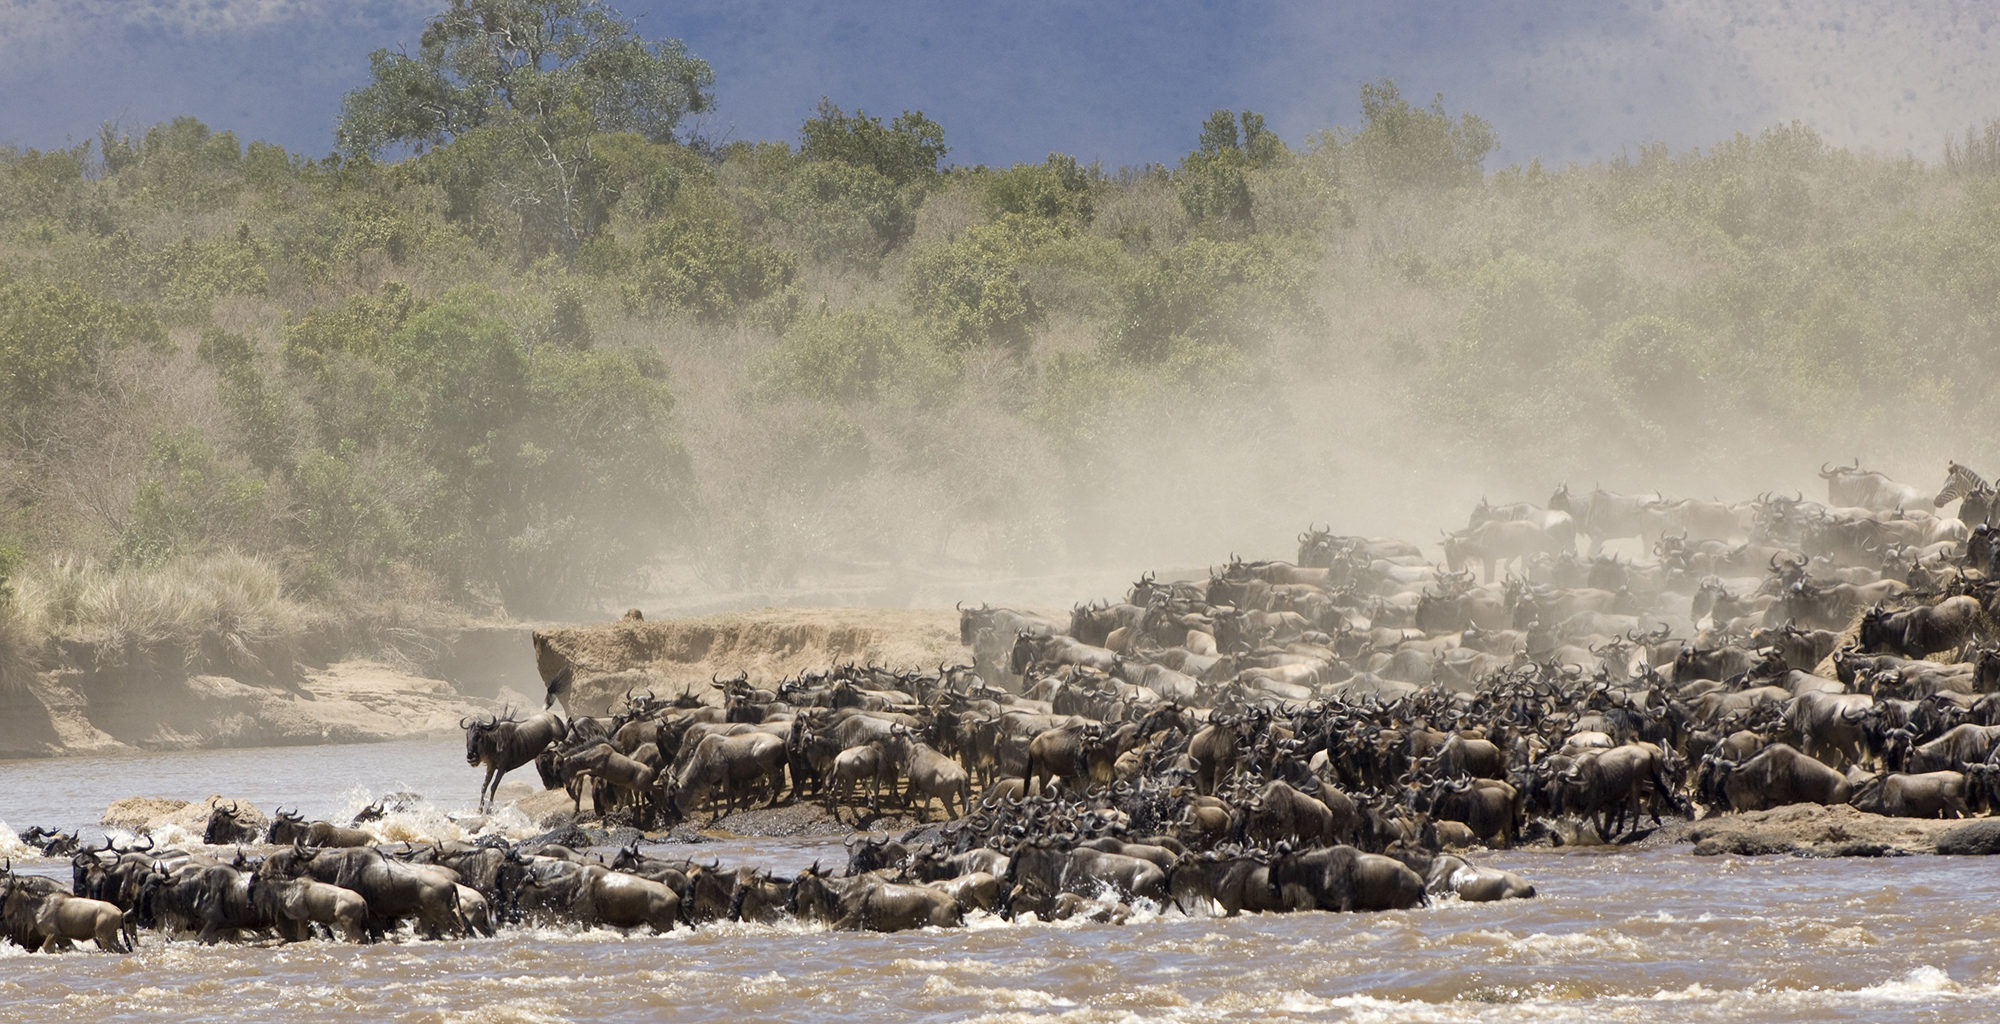 Tanzania-Serengeti-National-Park-Buffalo-Migration